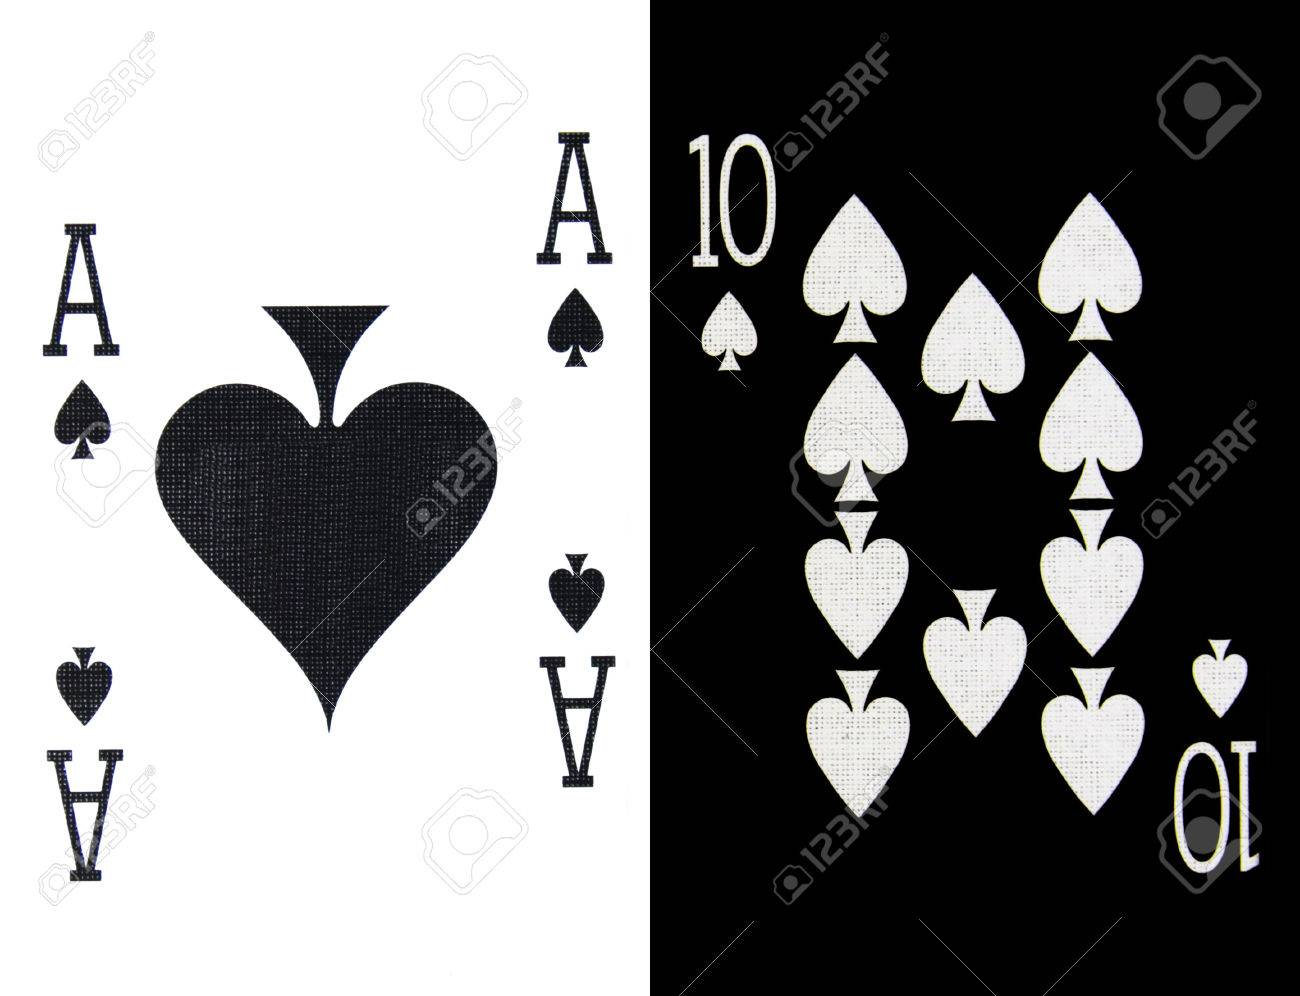 Sit and go holdem strategy